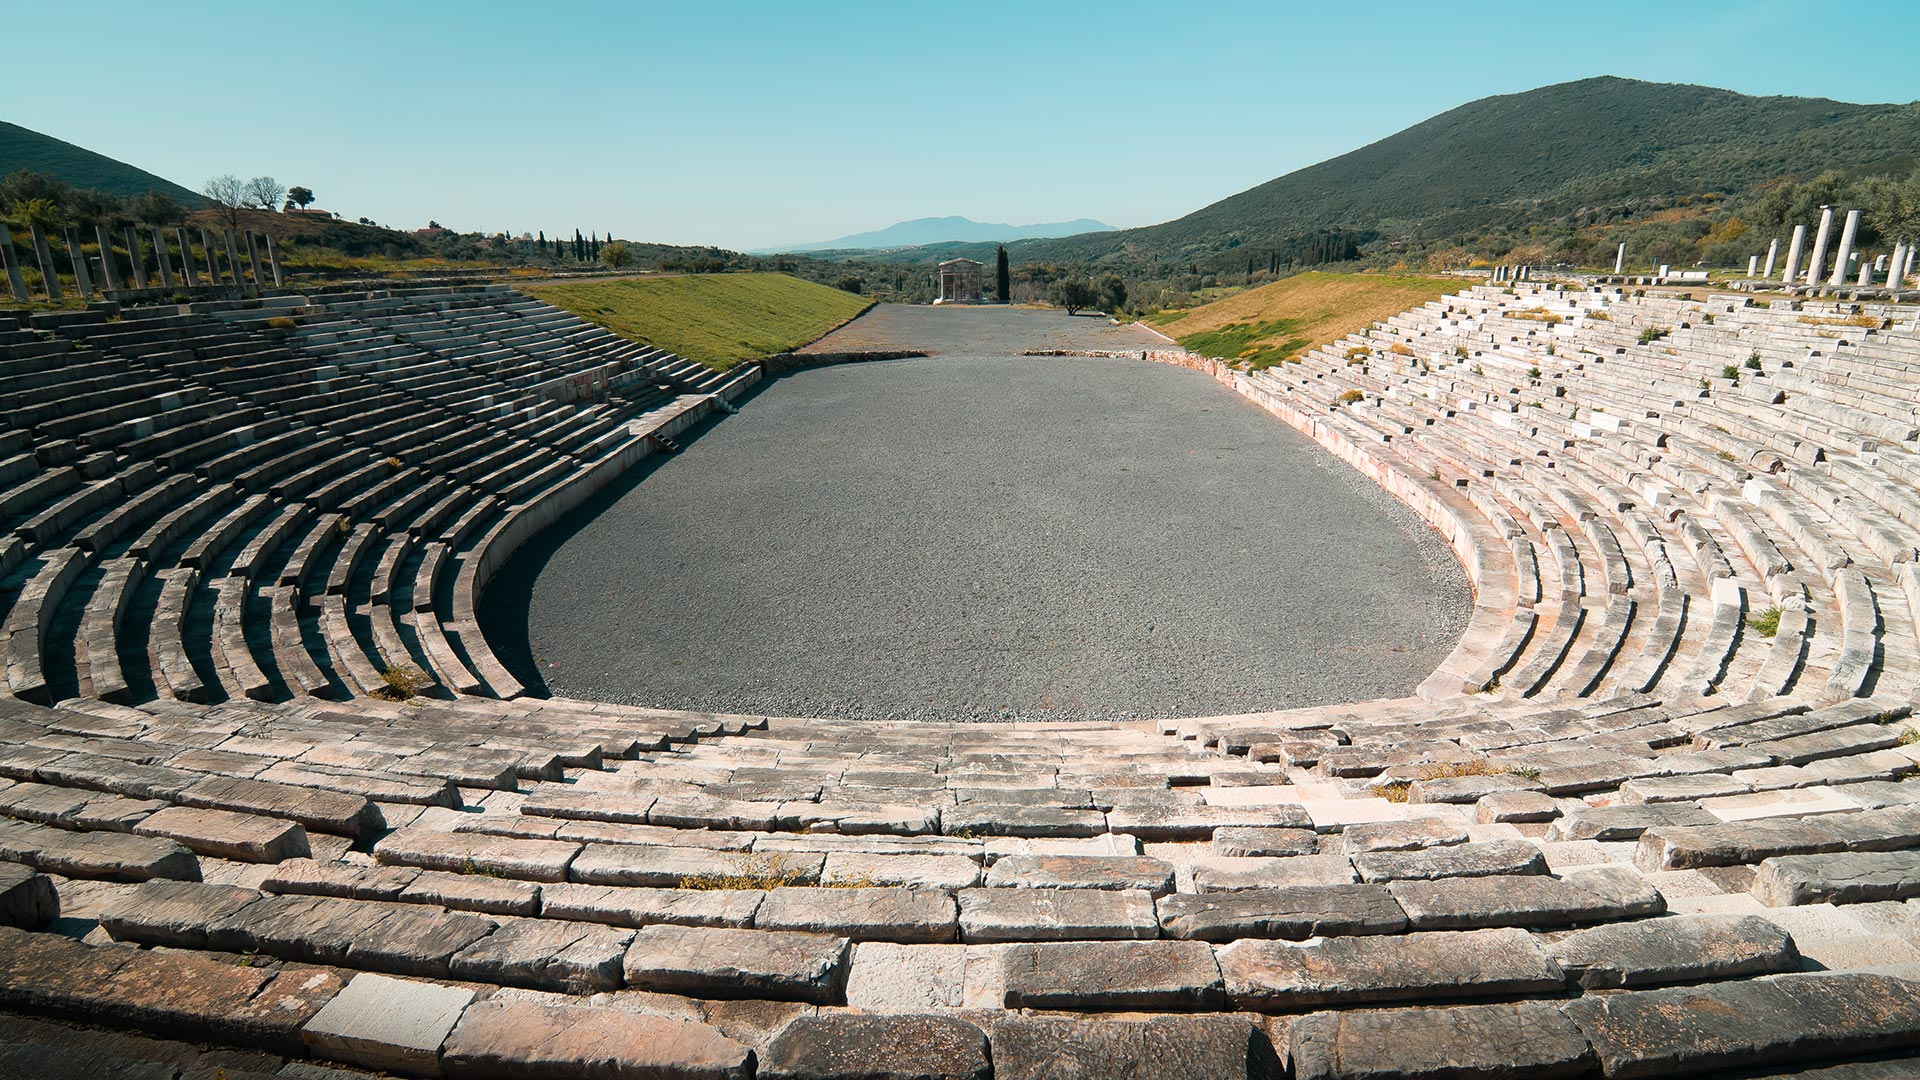 Among the most impressive buildings, the well-preserved stadium includes 18 rows of seats